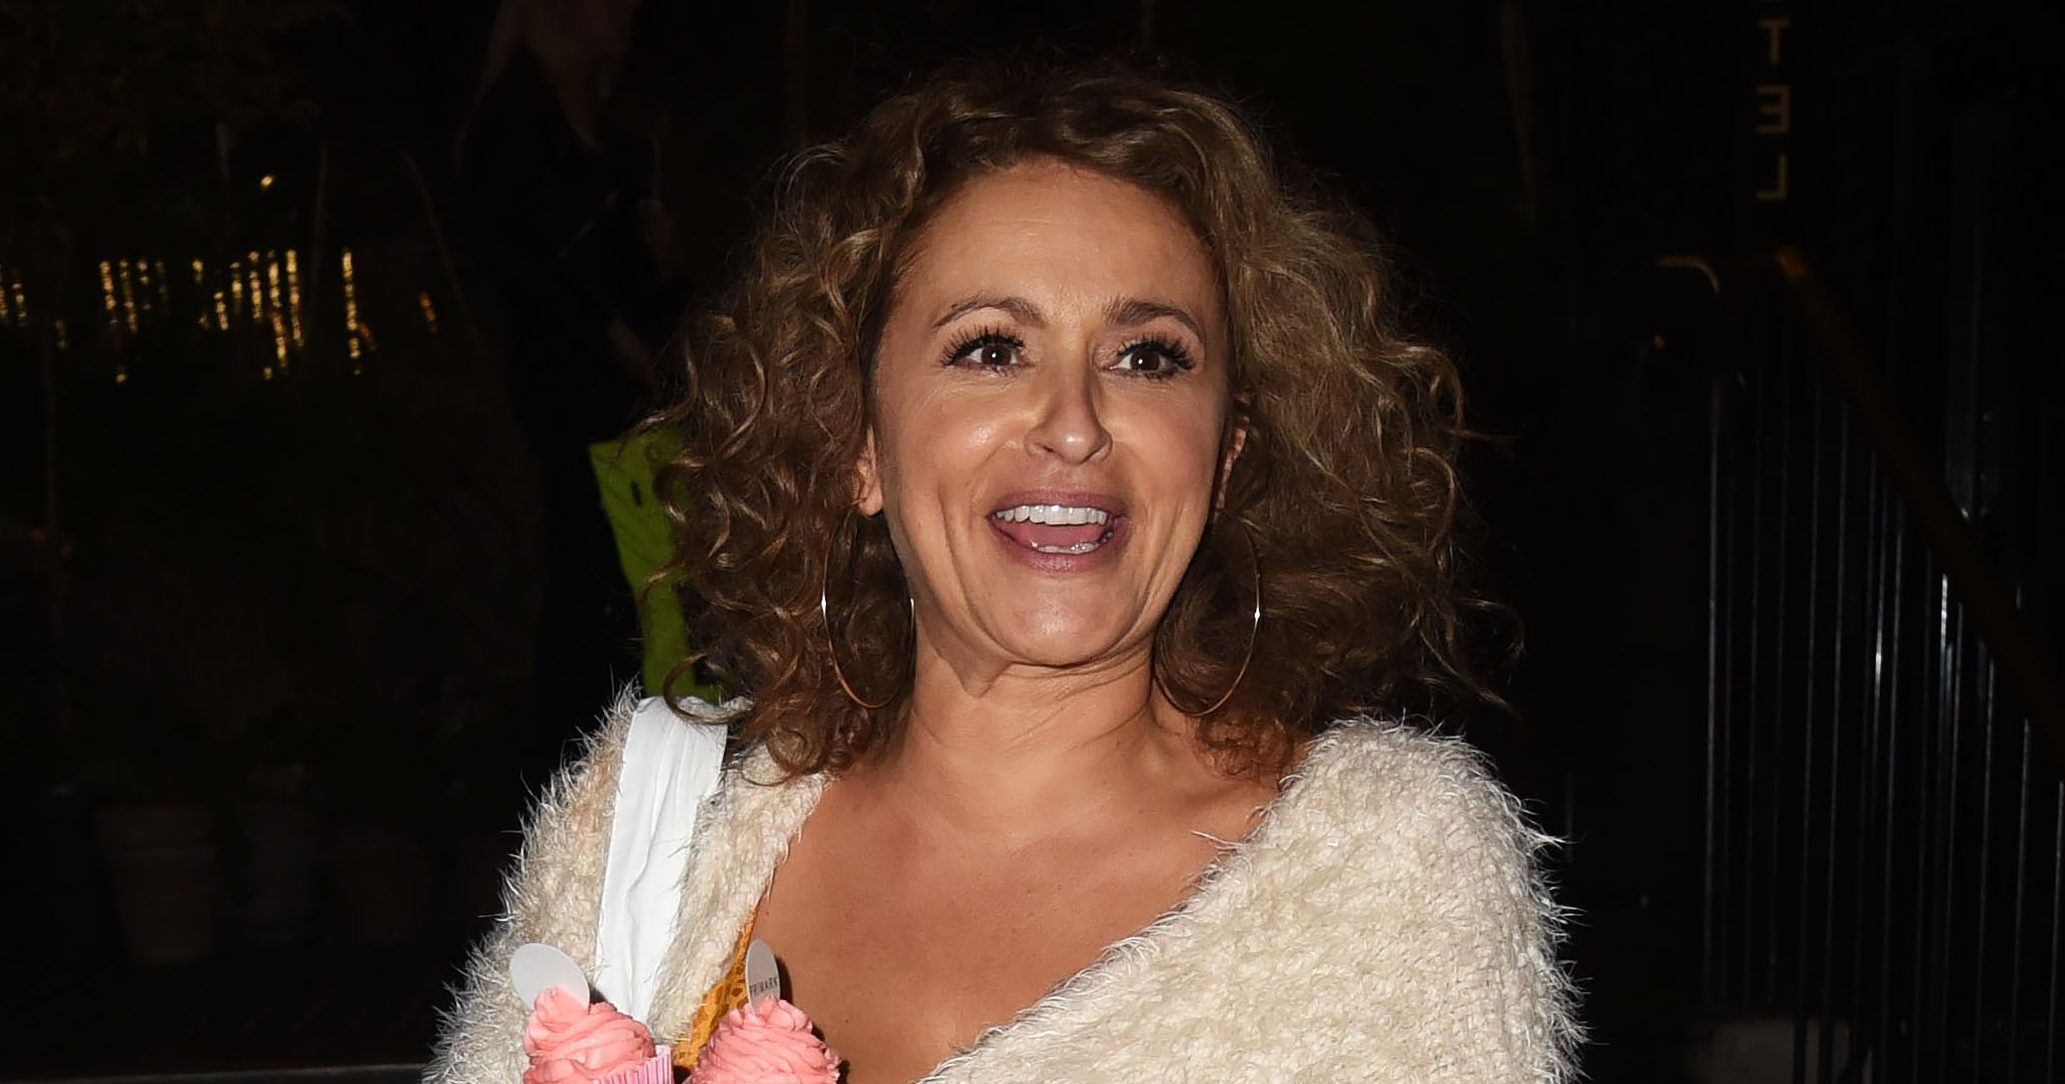 Nadia Sawalha dares fans to copy her X-rated social media challenge she poses completely naked